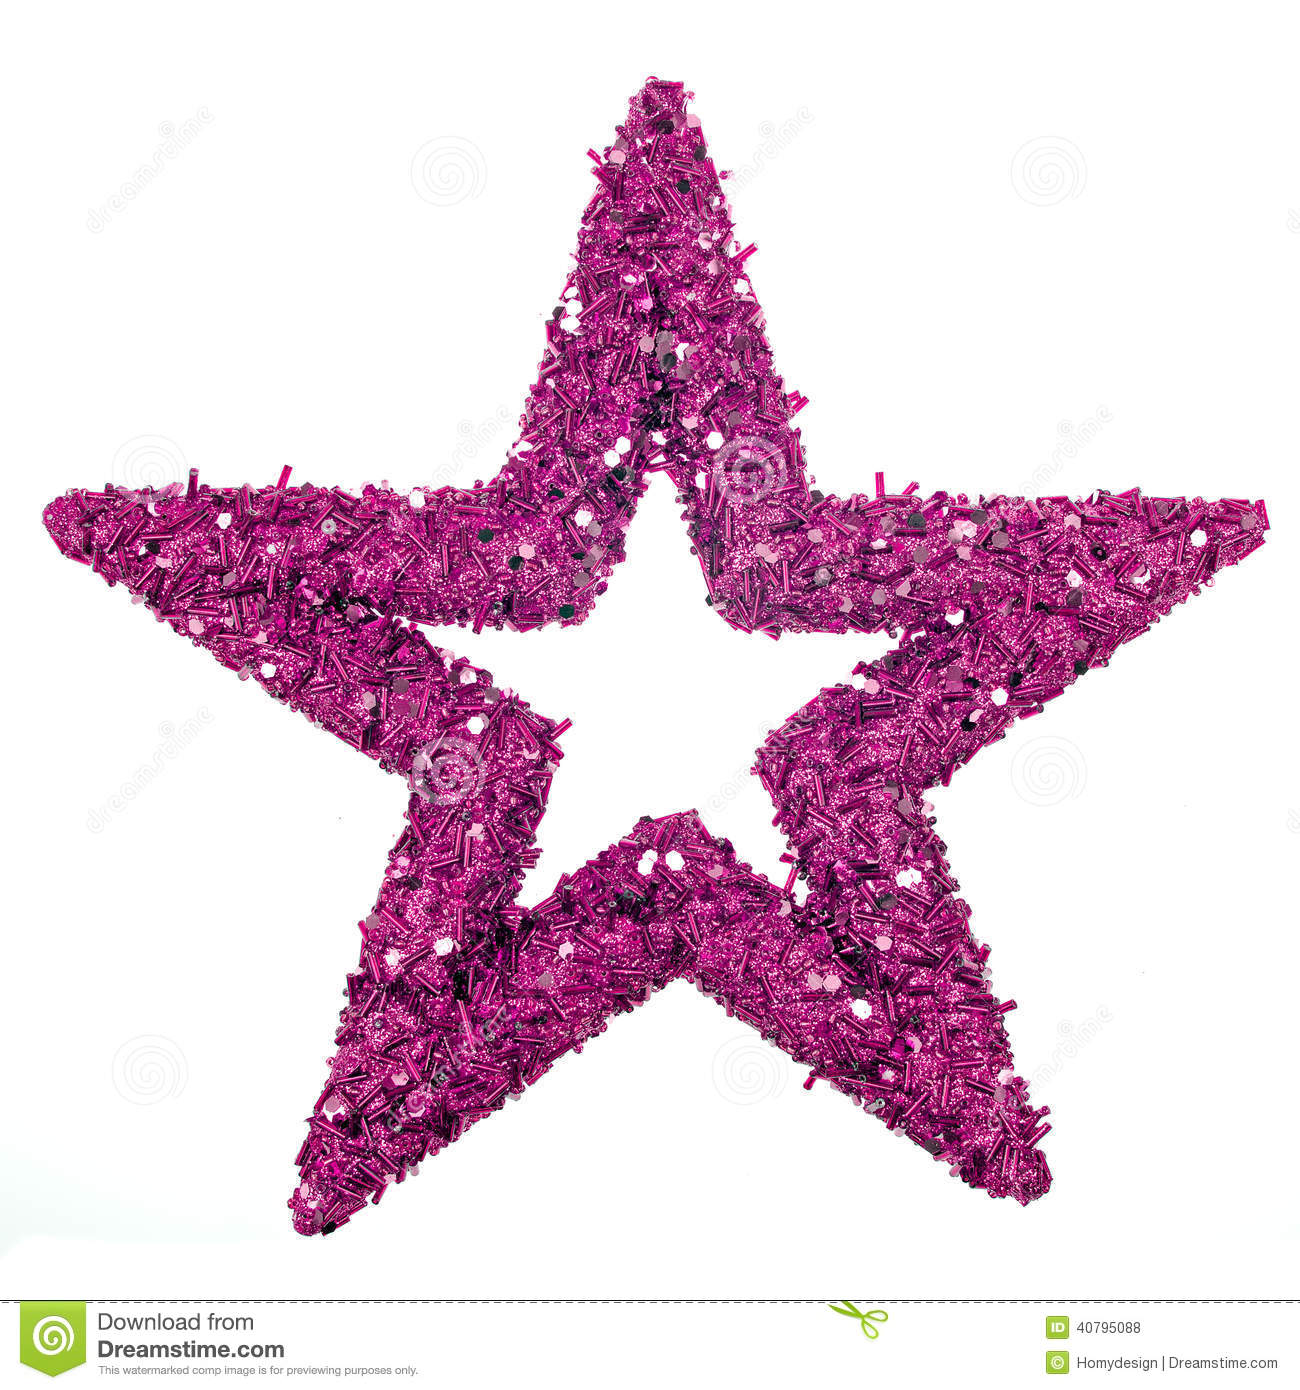 purple star to decorate a Christmas tree.